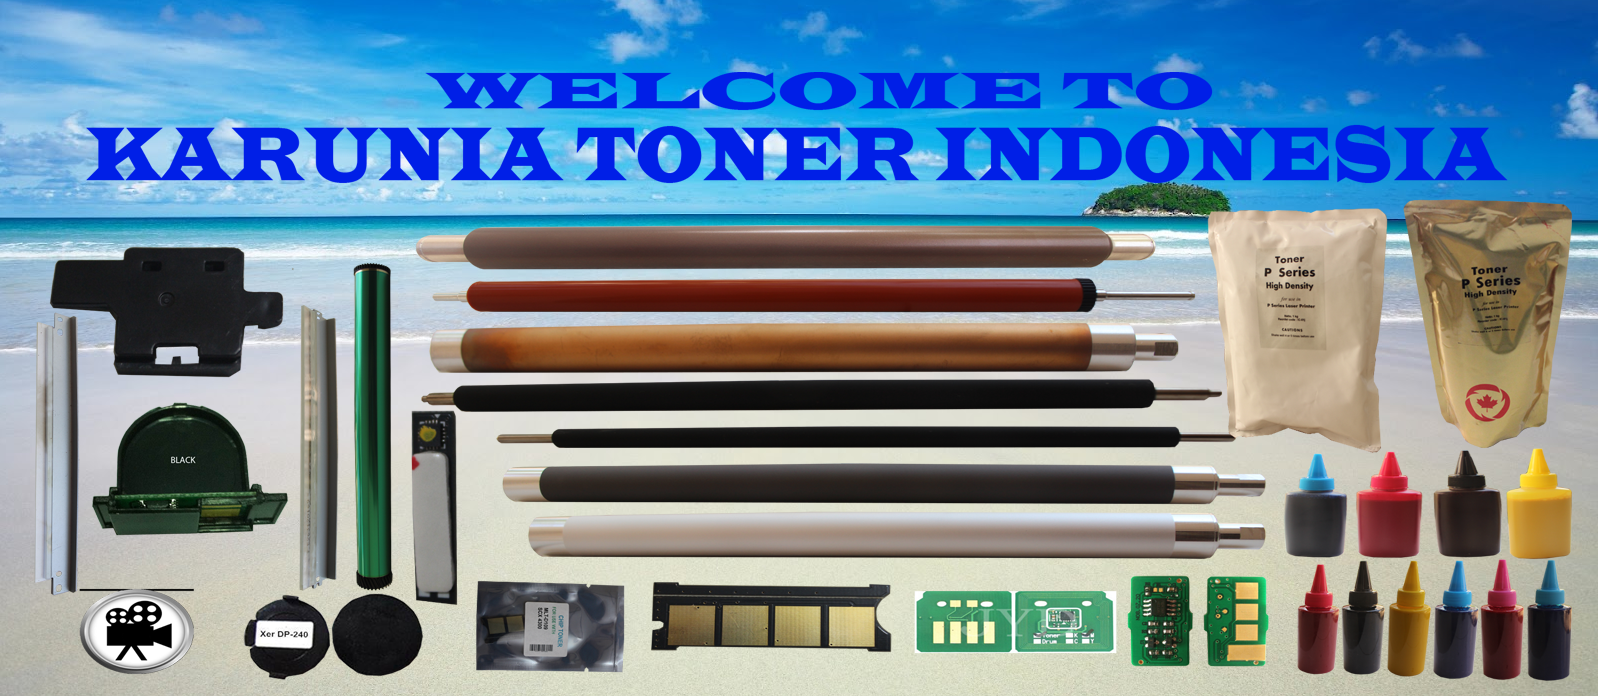 WELCOME TO KARUNIA TONER INDONESIA